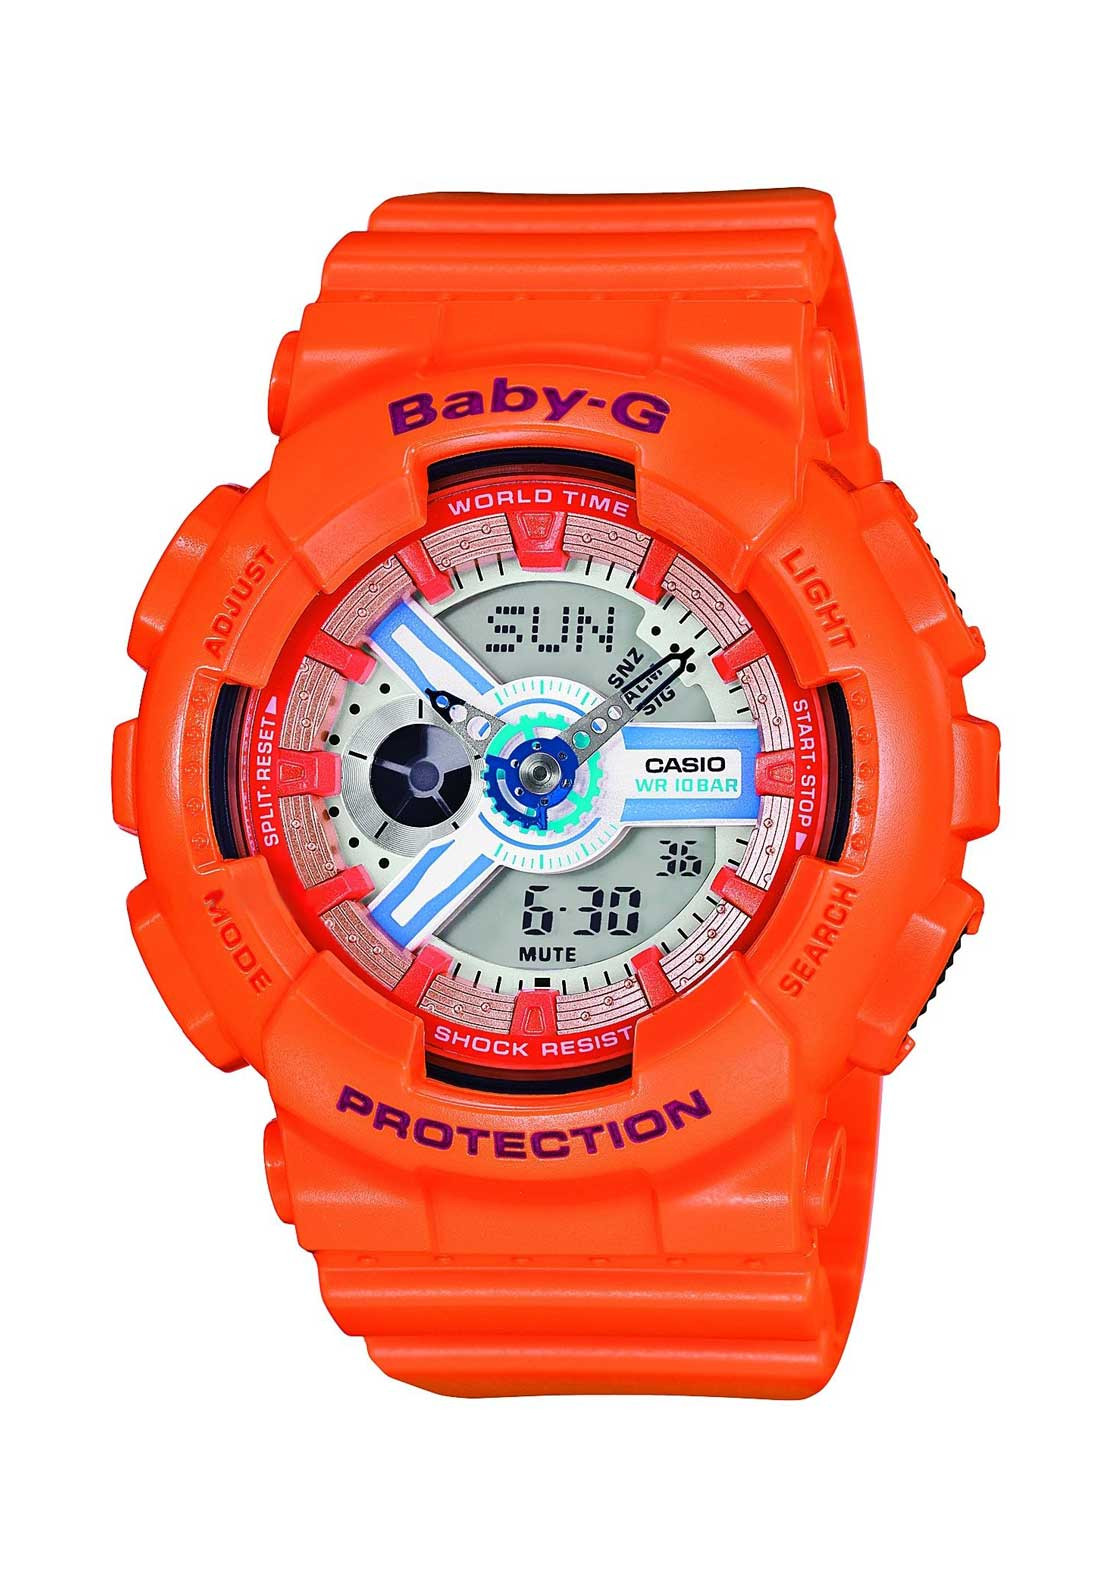 Casio Ladies Baby-G Alarm Chronograph Watch, Orange